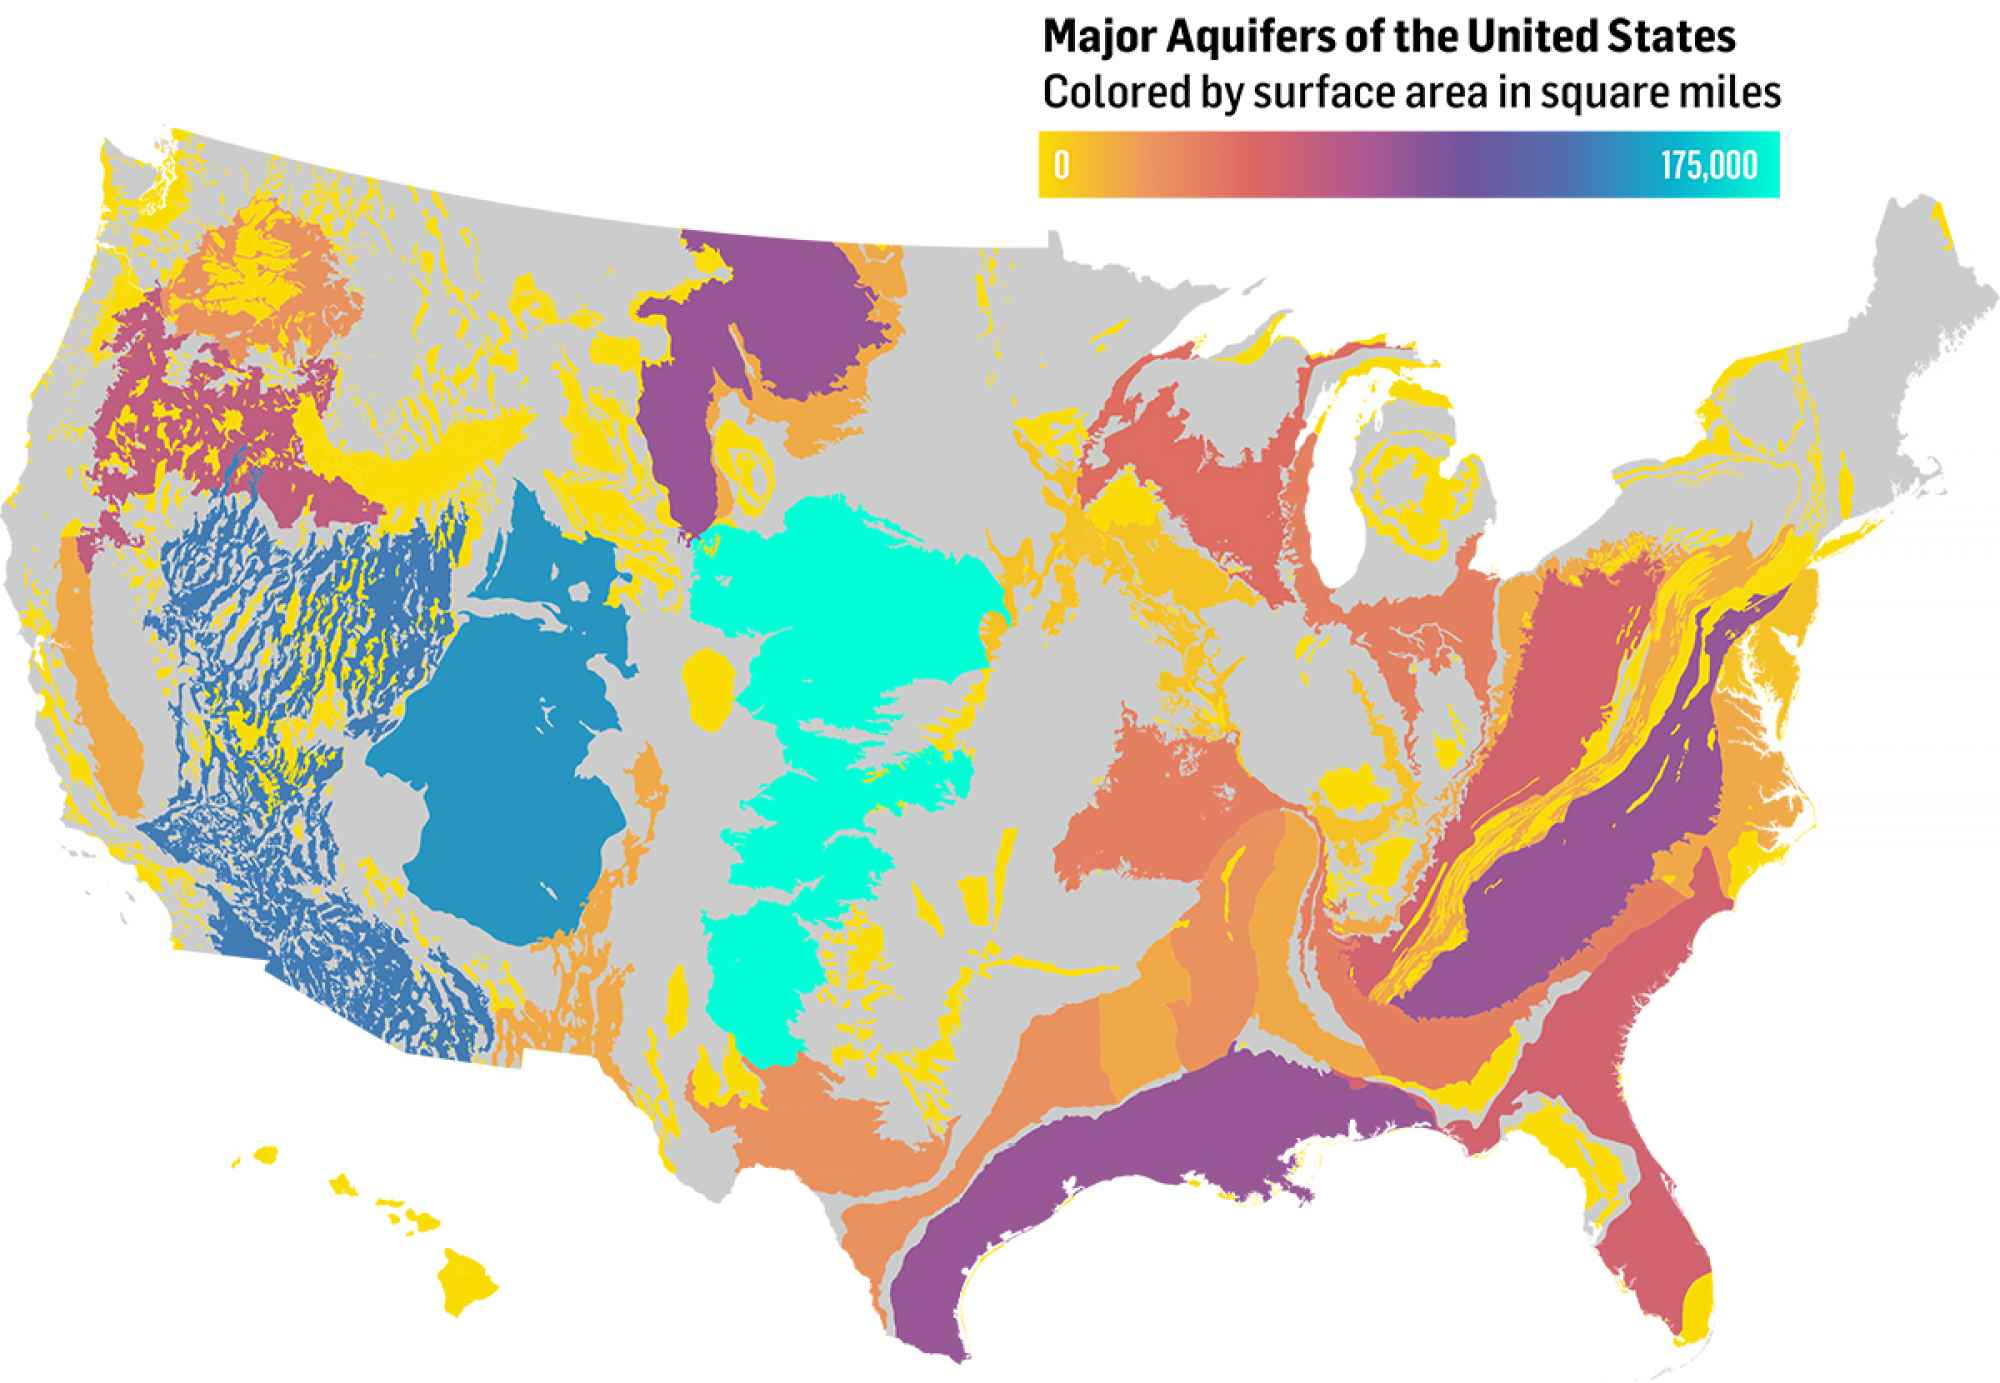 Forecast Western States Face Enduring Water Crisis - Aquifer us map